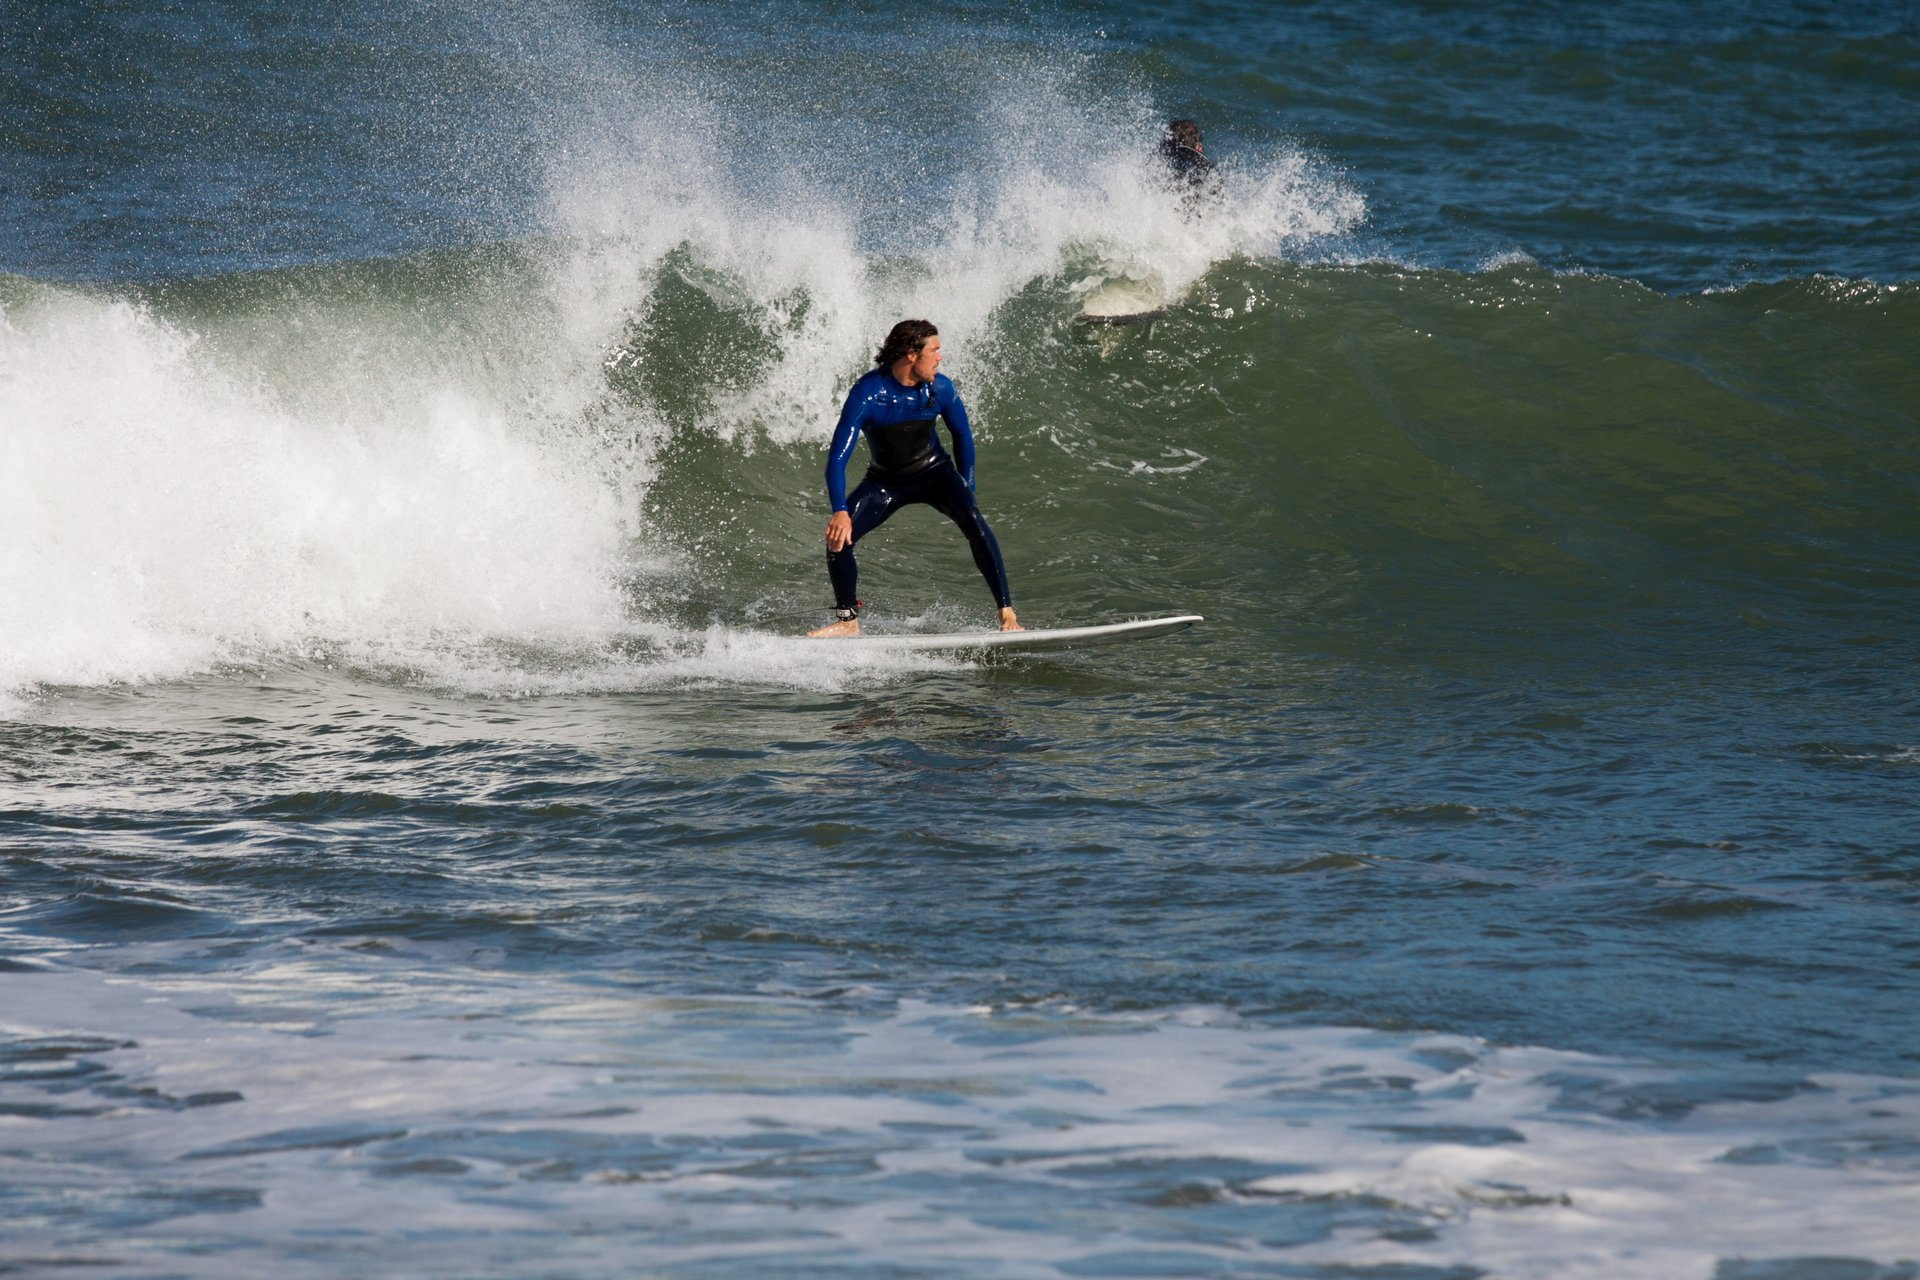 Waverider12's photo of Llangennith